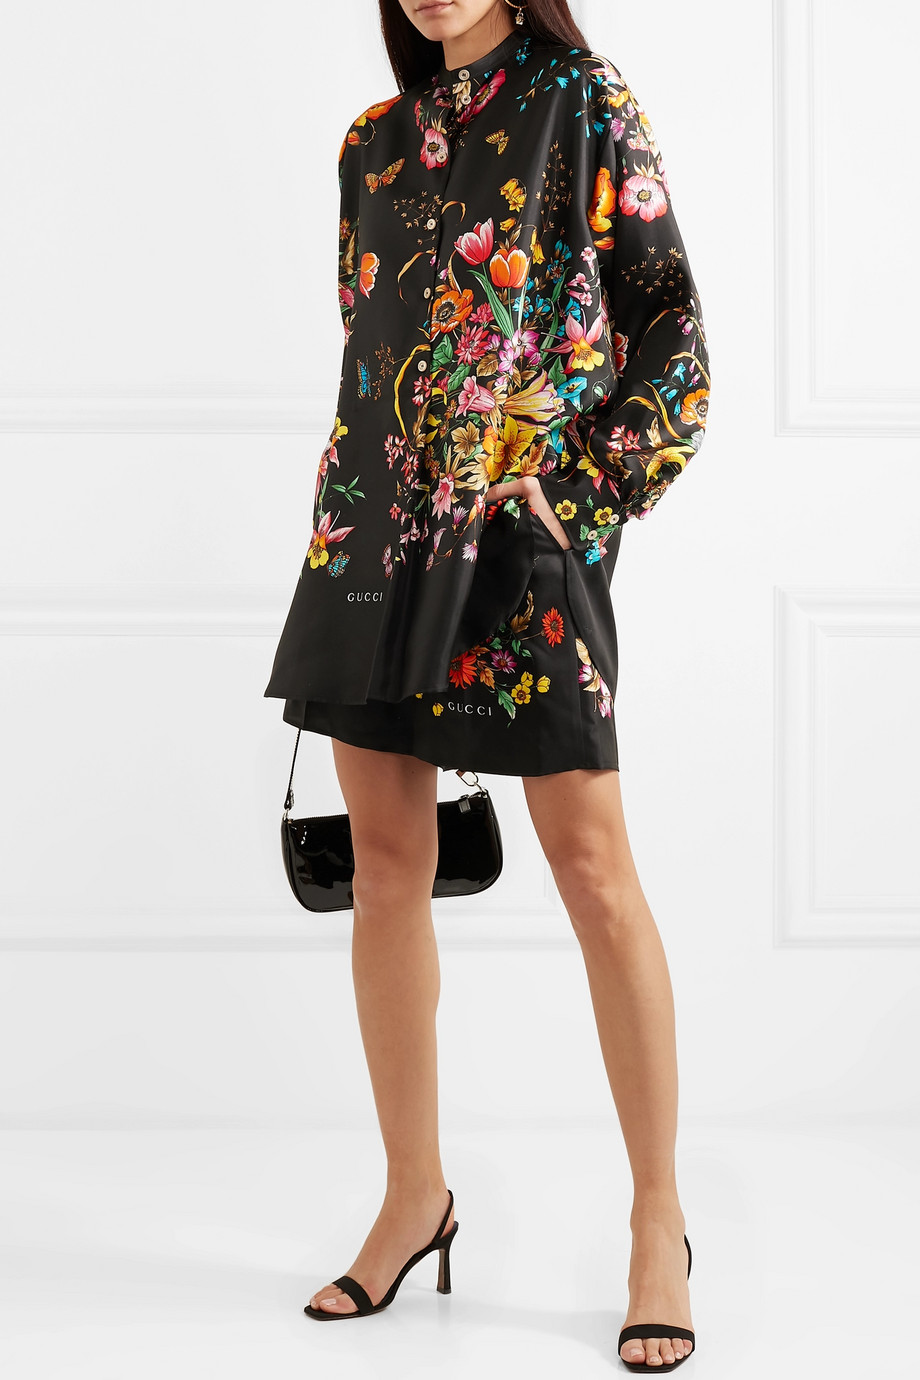 Gucci Oversized floral-print silk-twill shirt